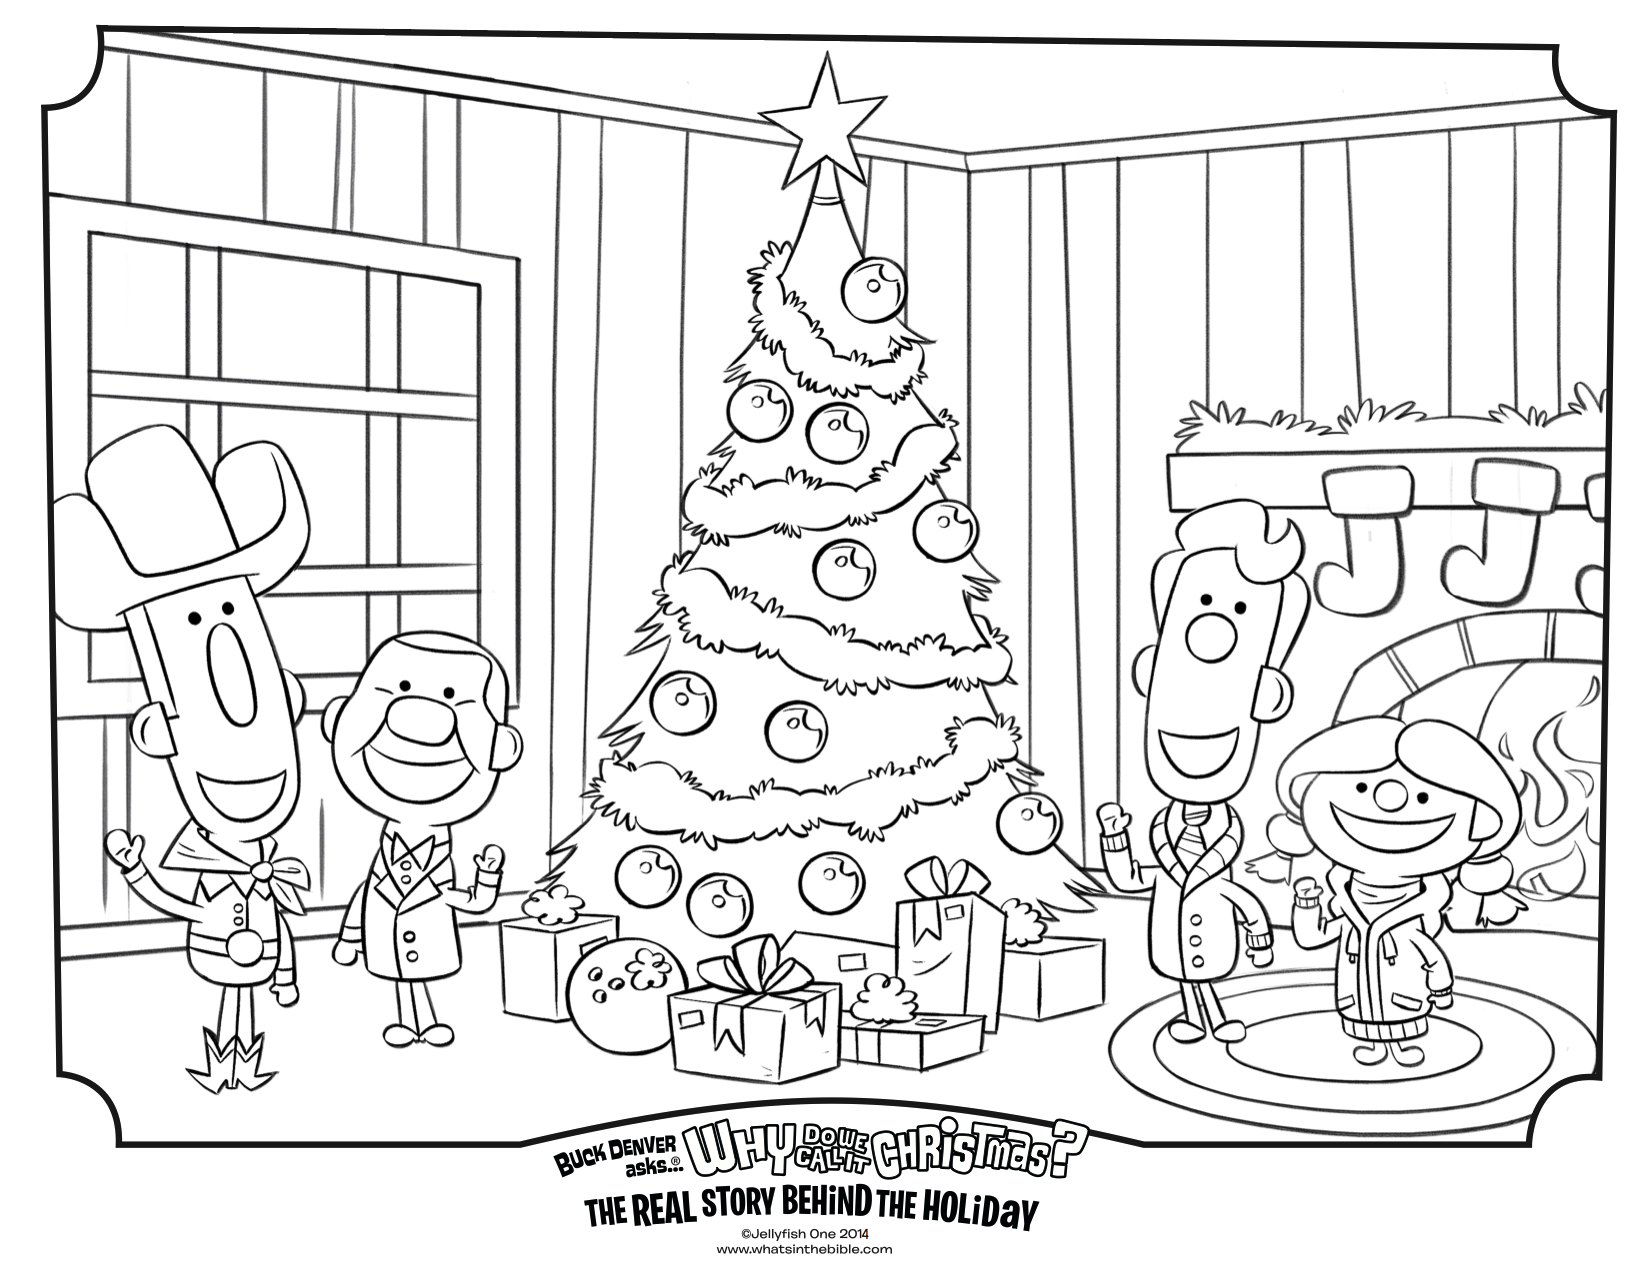 jellytelly coloring pages - photo#15